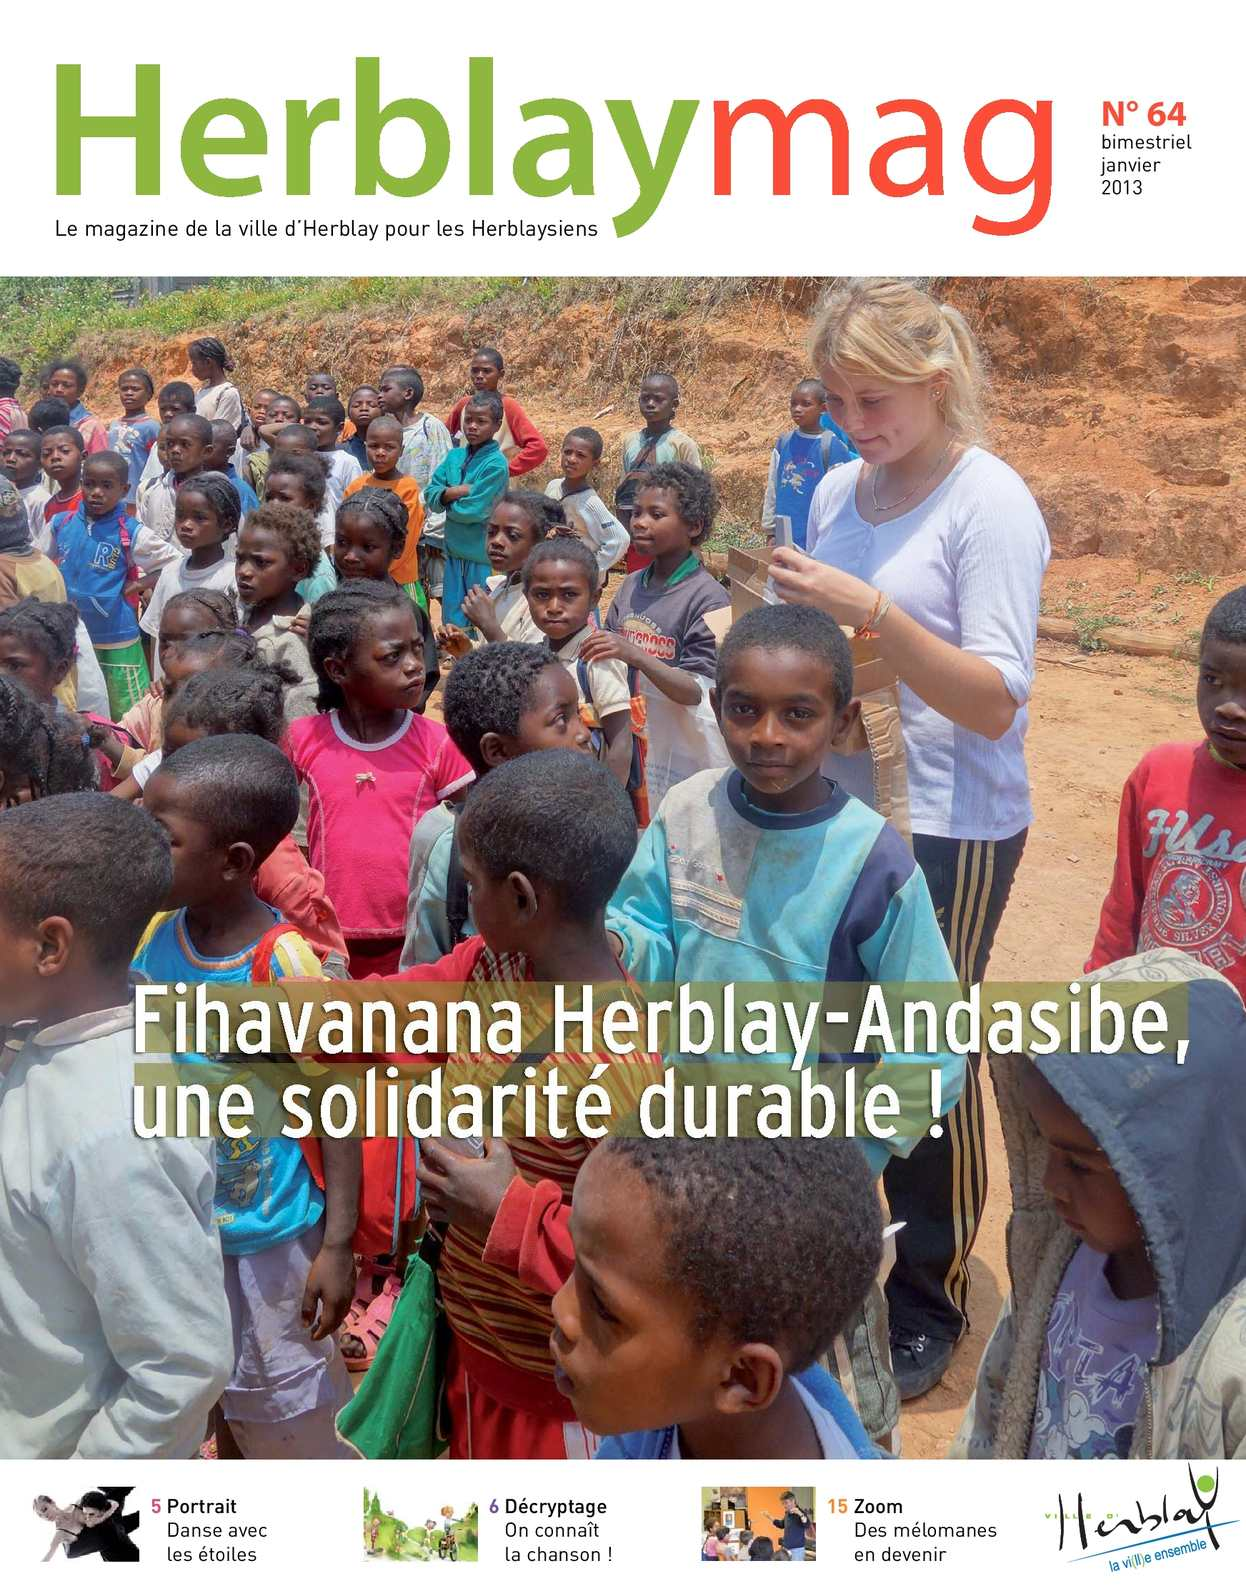 Calam o herblay mag n 64 janvier 2013 - Point p herblay ...